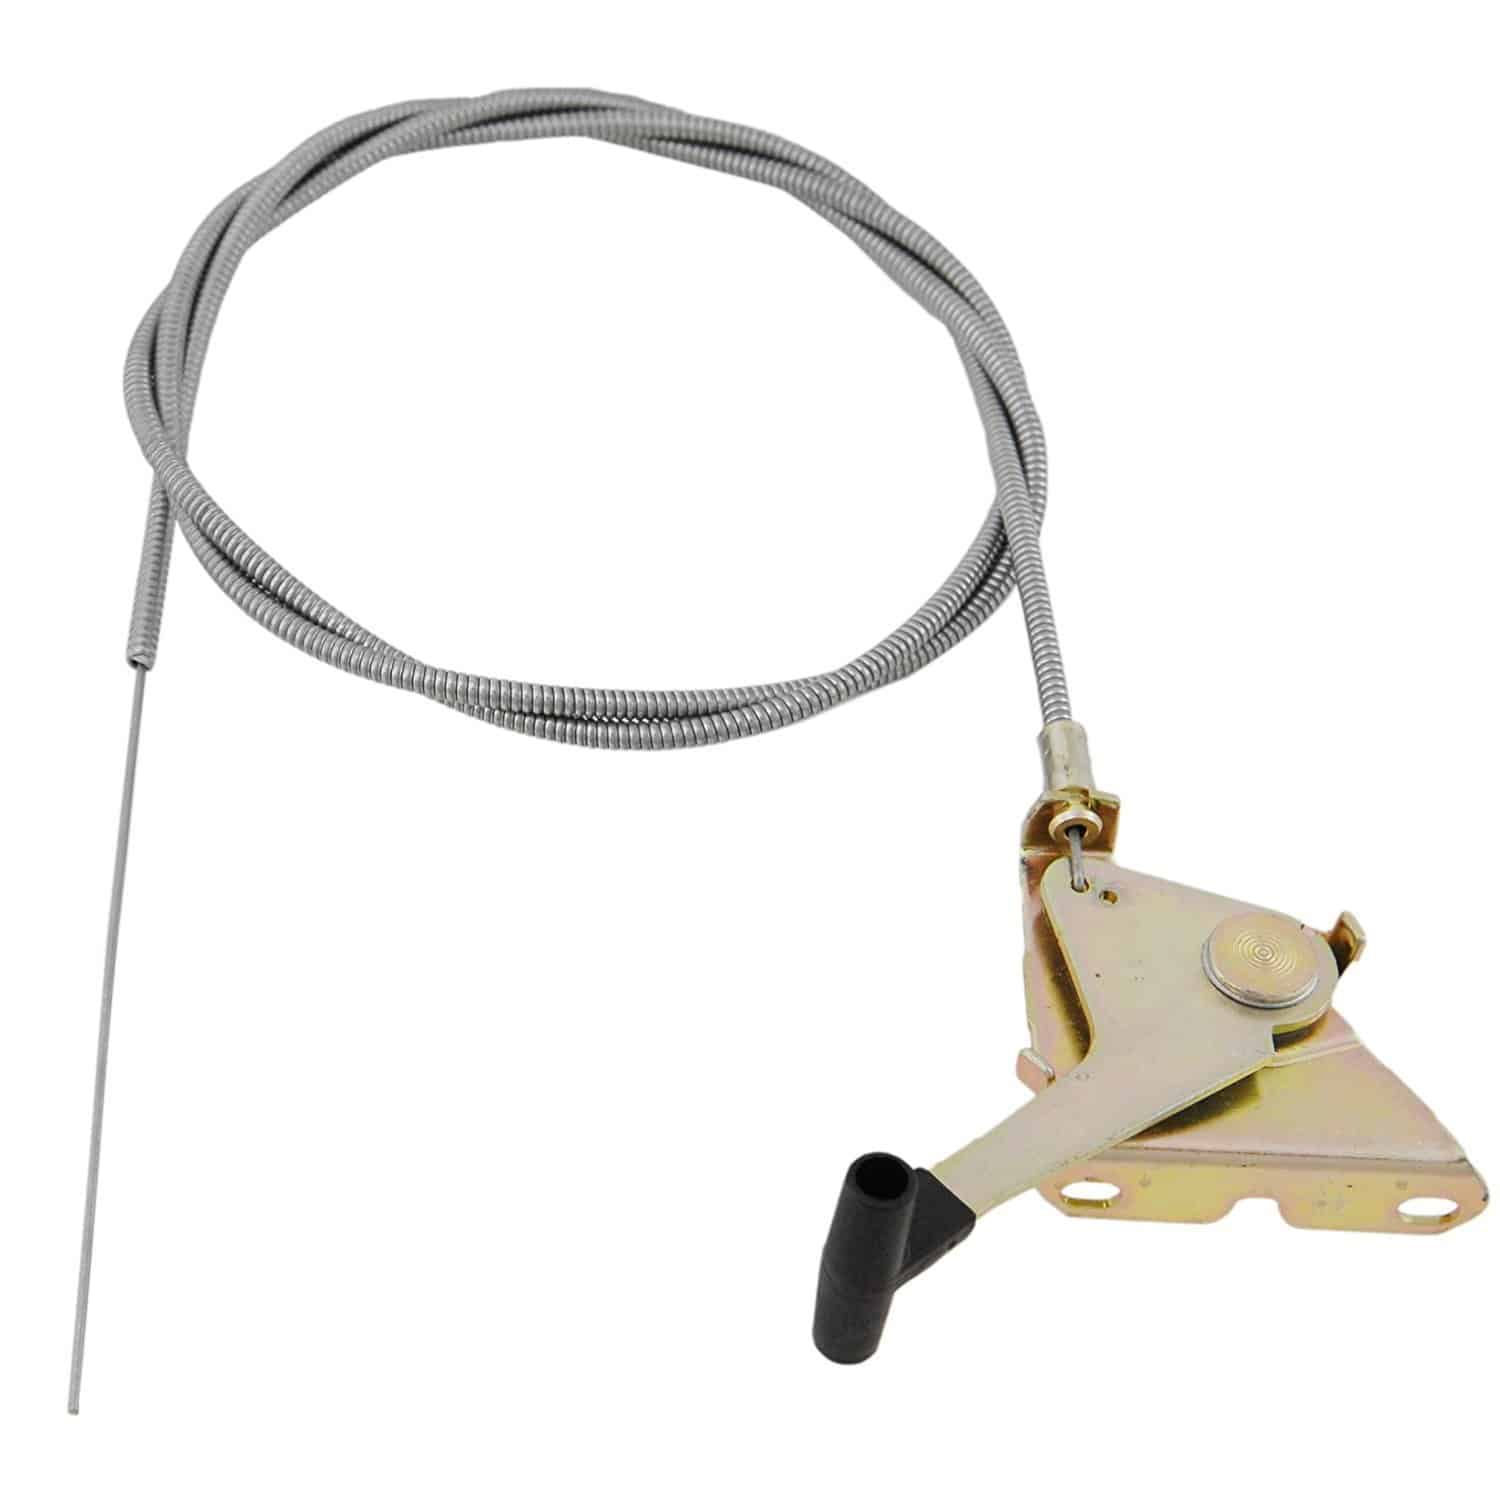 Throttle control cable for lawn mowers.